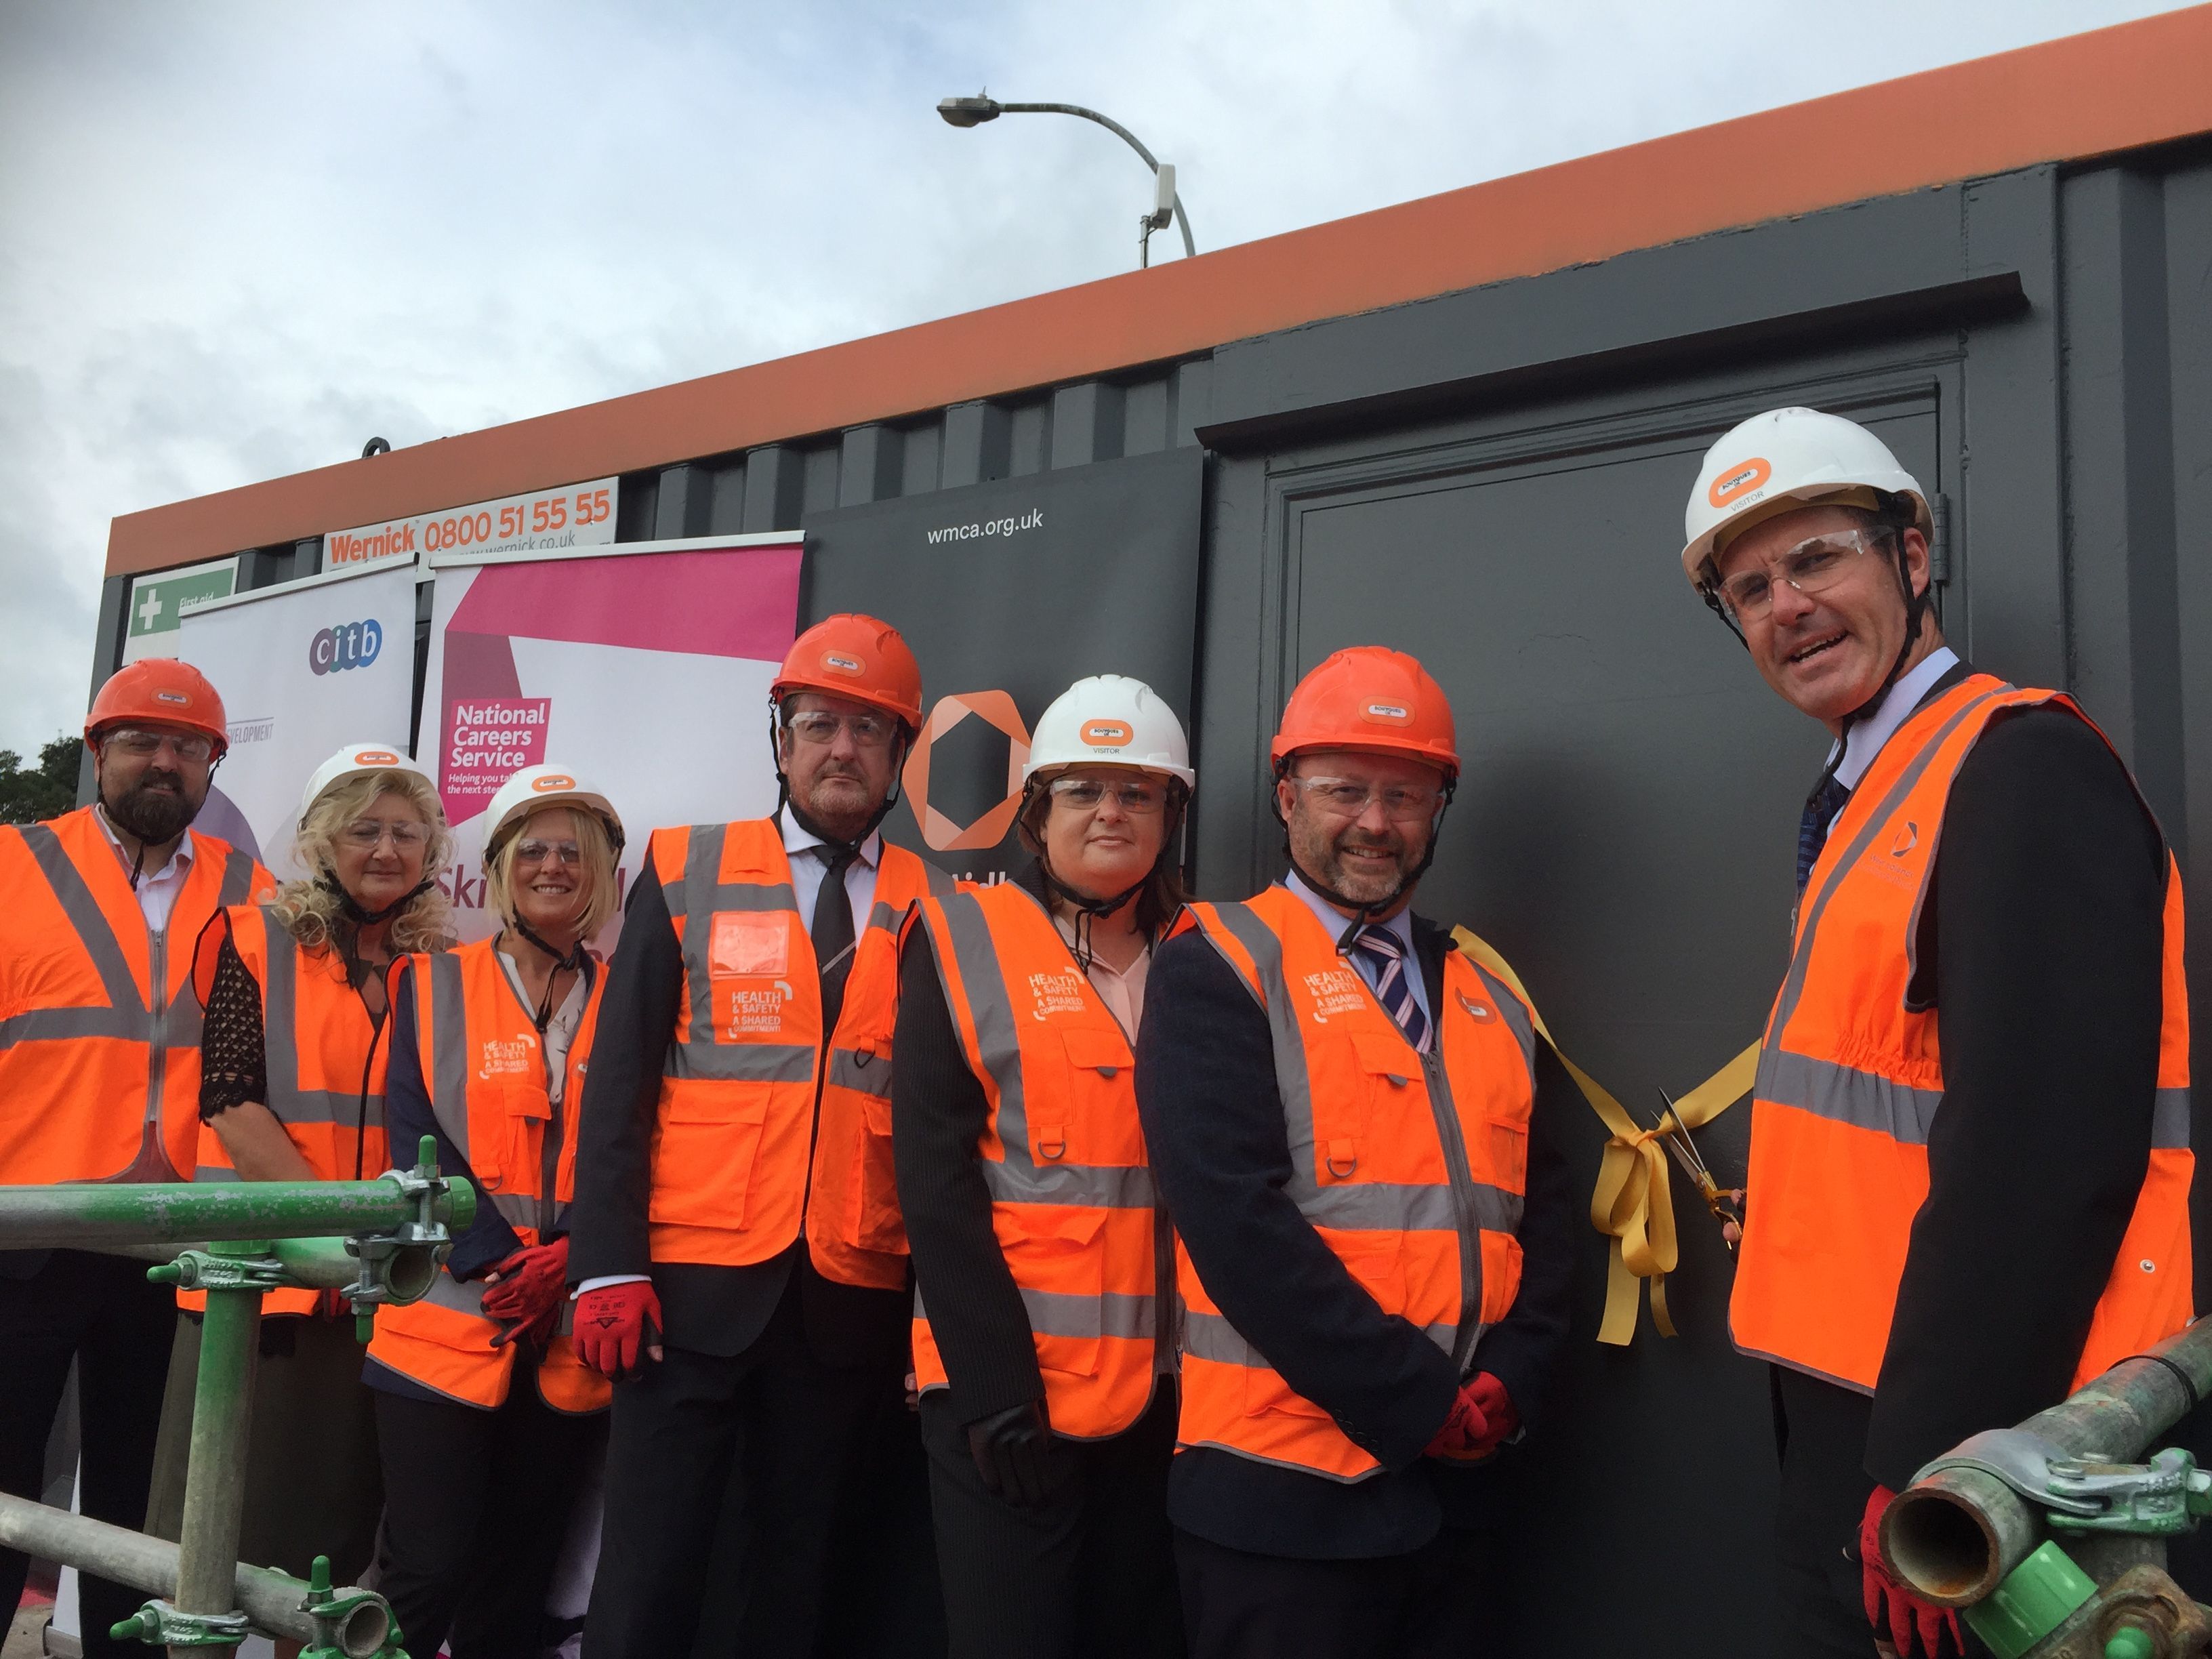 New construction hub in Birmingham offers jobs and training to local people